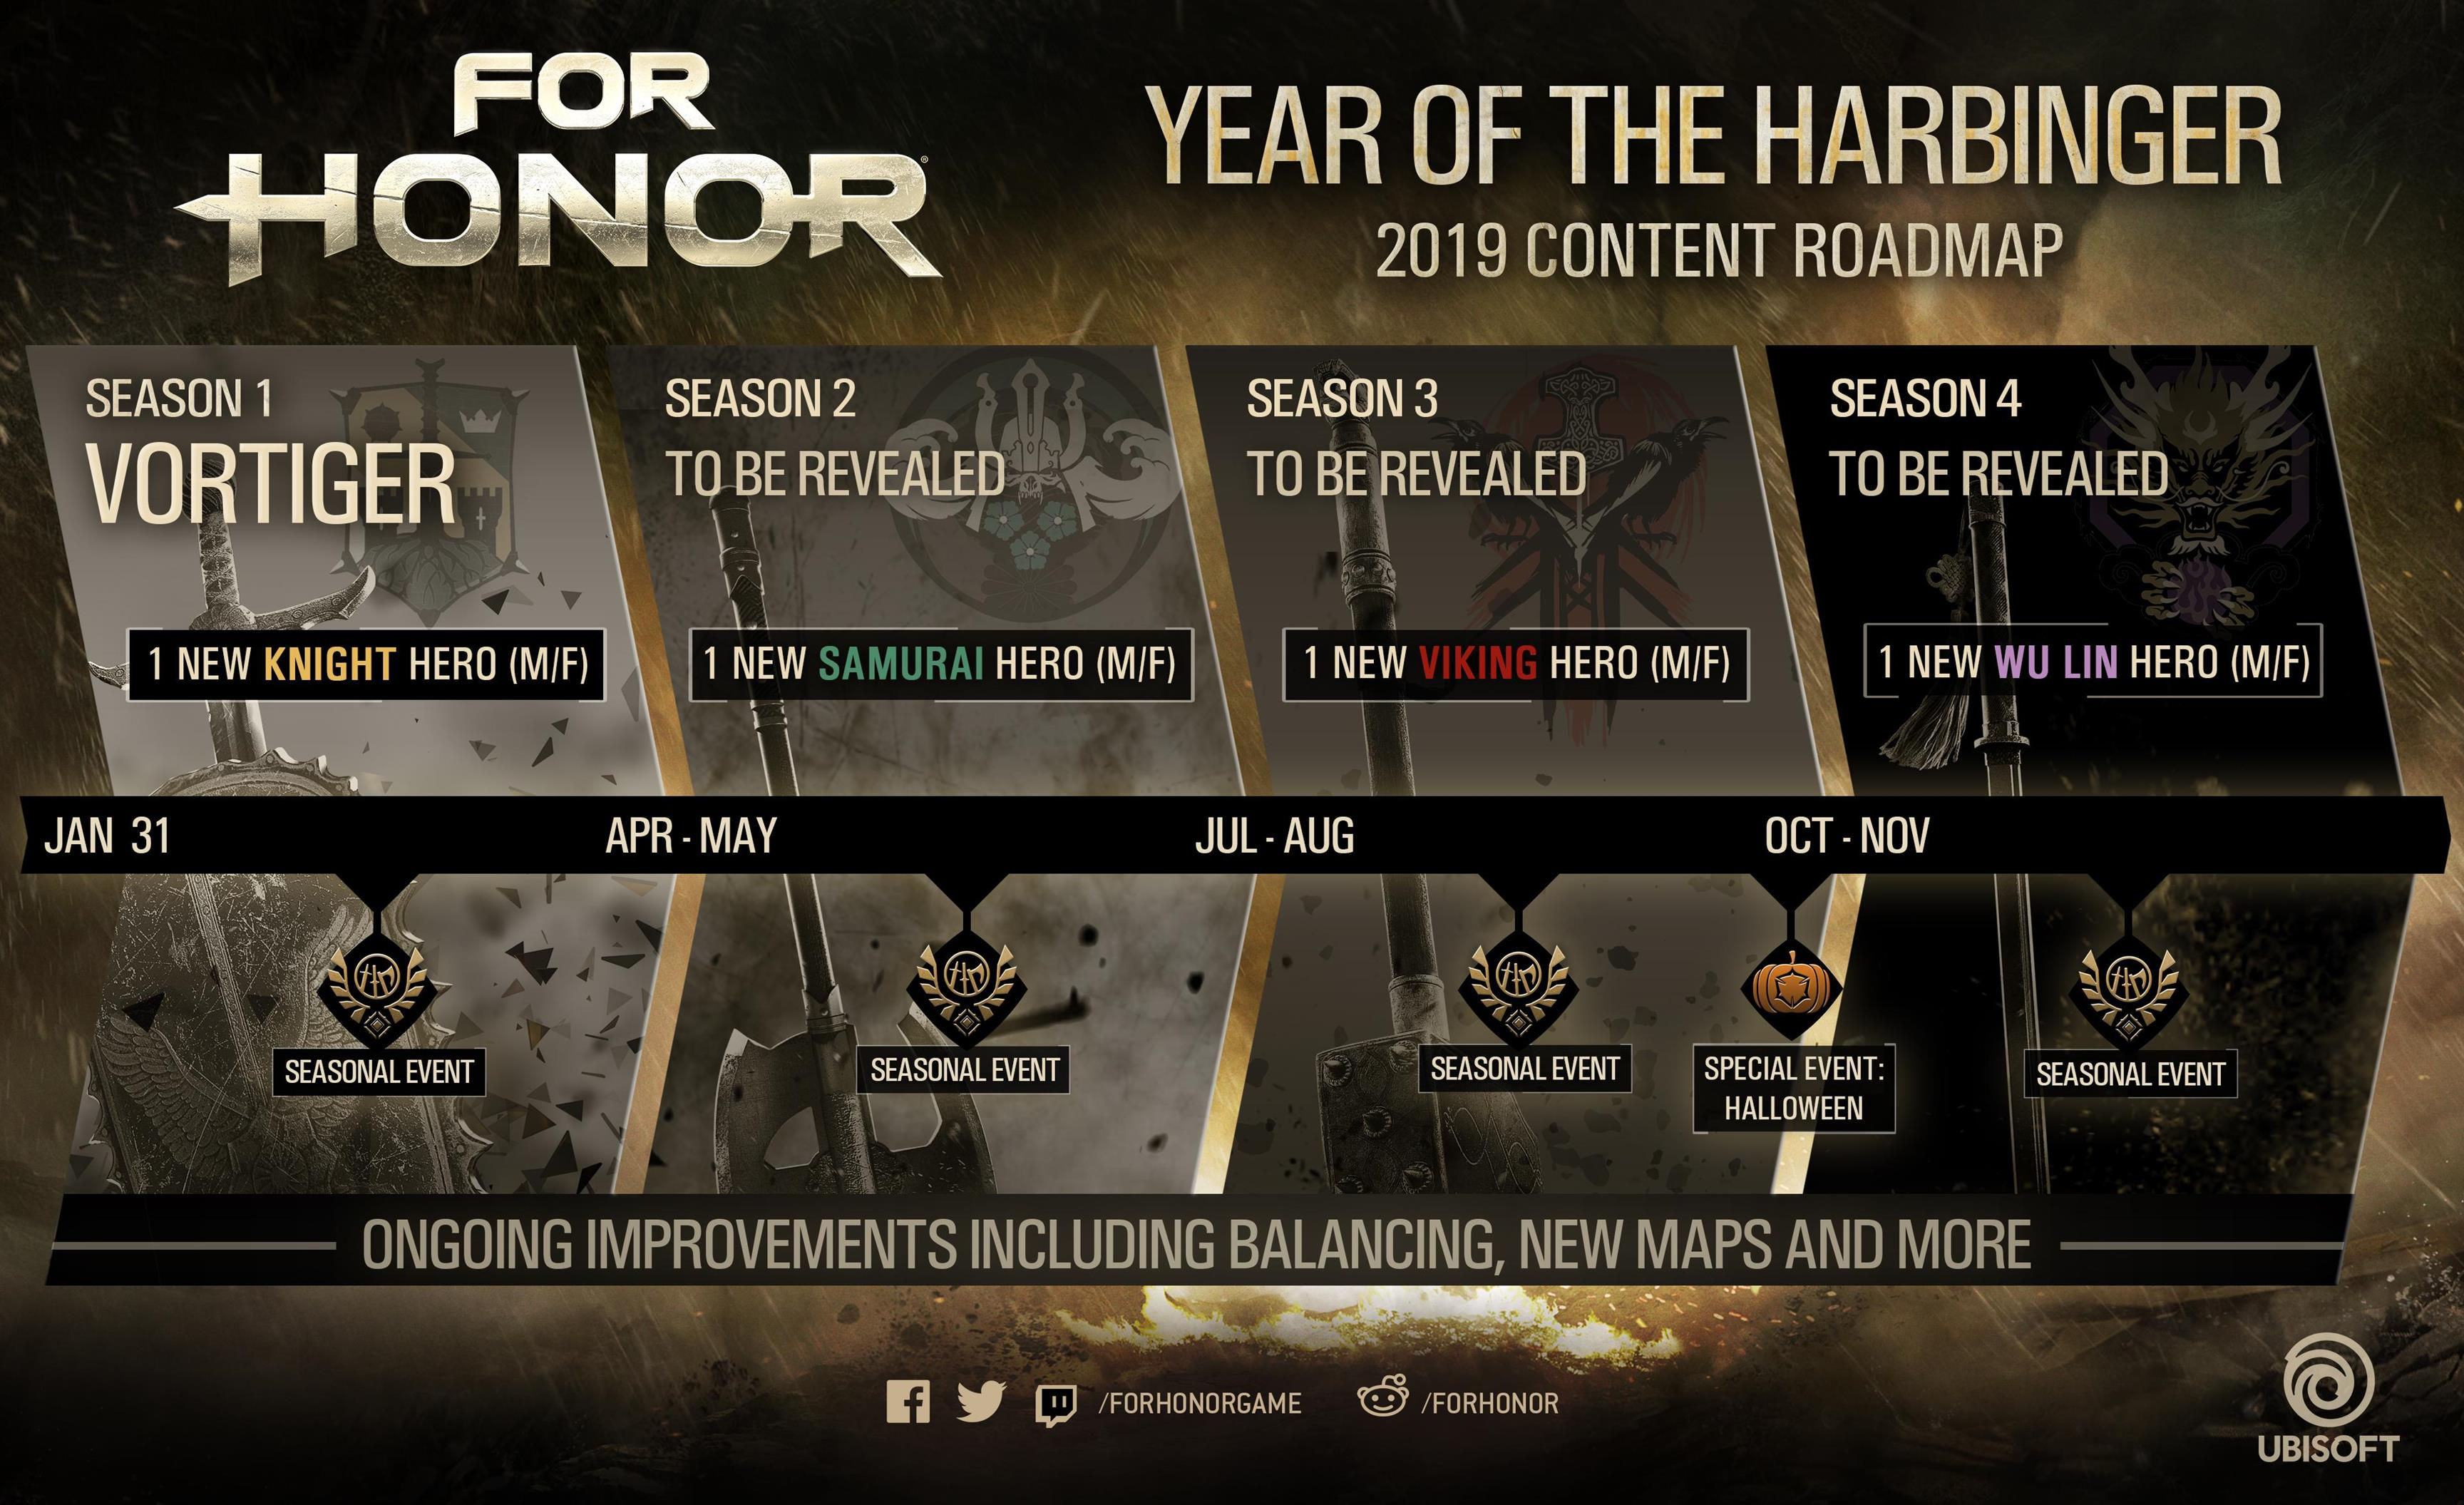 Calendario Ubisoft.For Honor Is Getting 4 New Heroes In 2019 Vg247